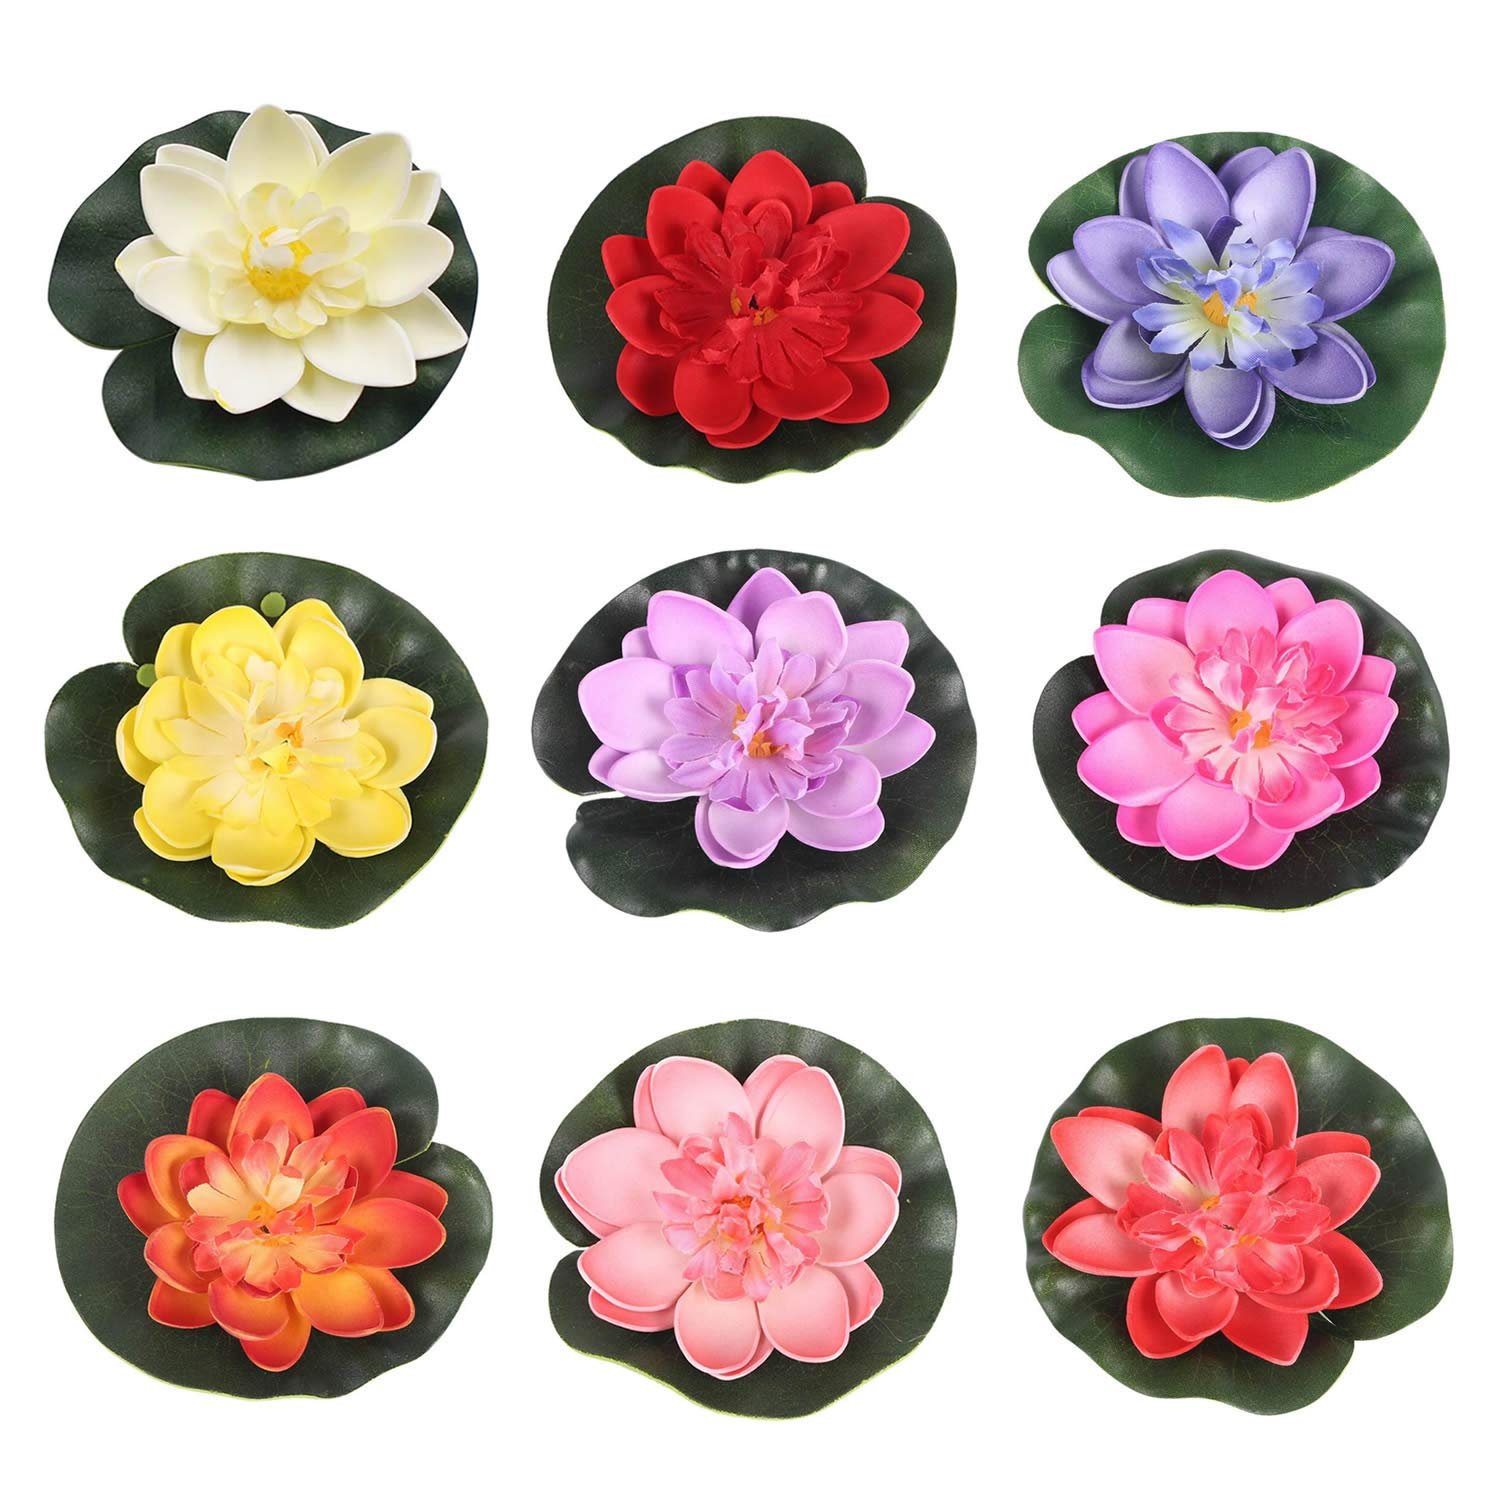 RONRONS-9-Pack-Artificial-Floating-Foam-Lotus-Flowers-with-Water-Lily-Pad-Ornaments-Colorful